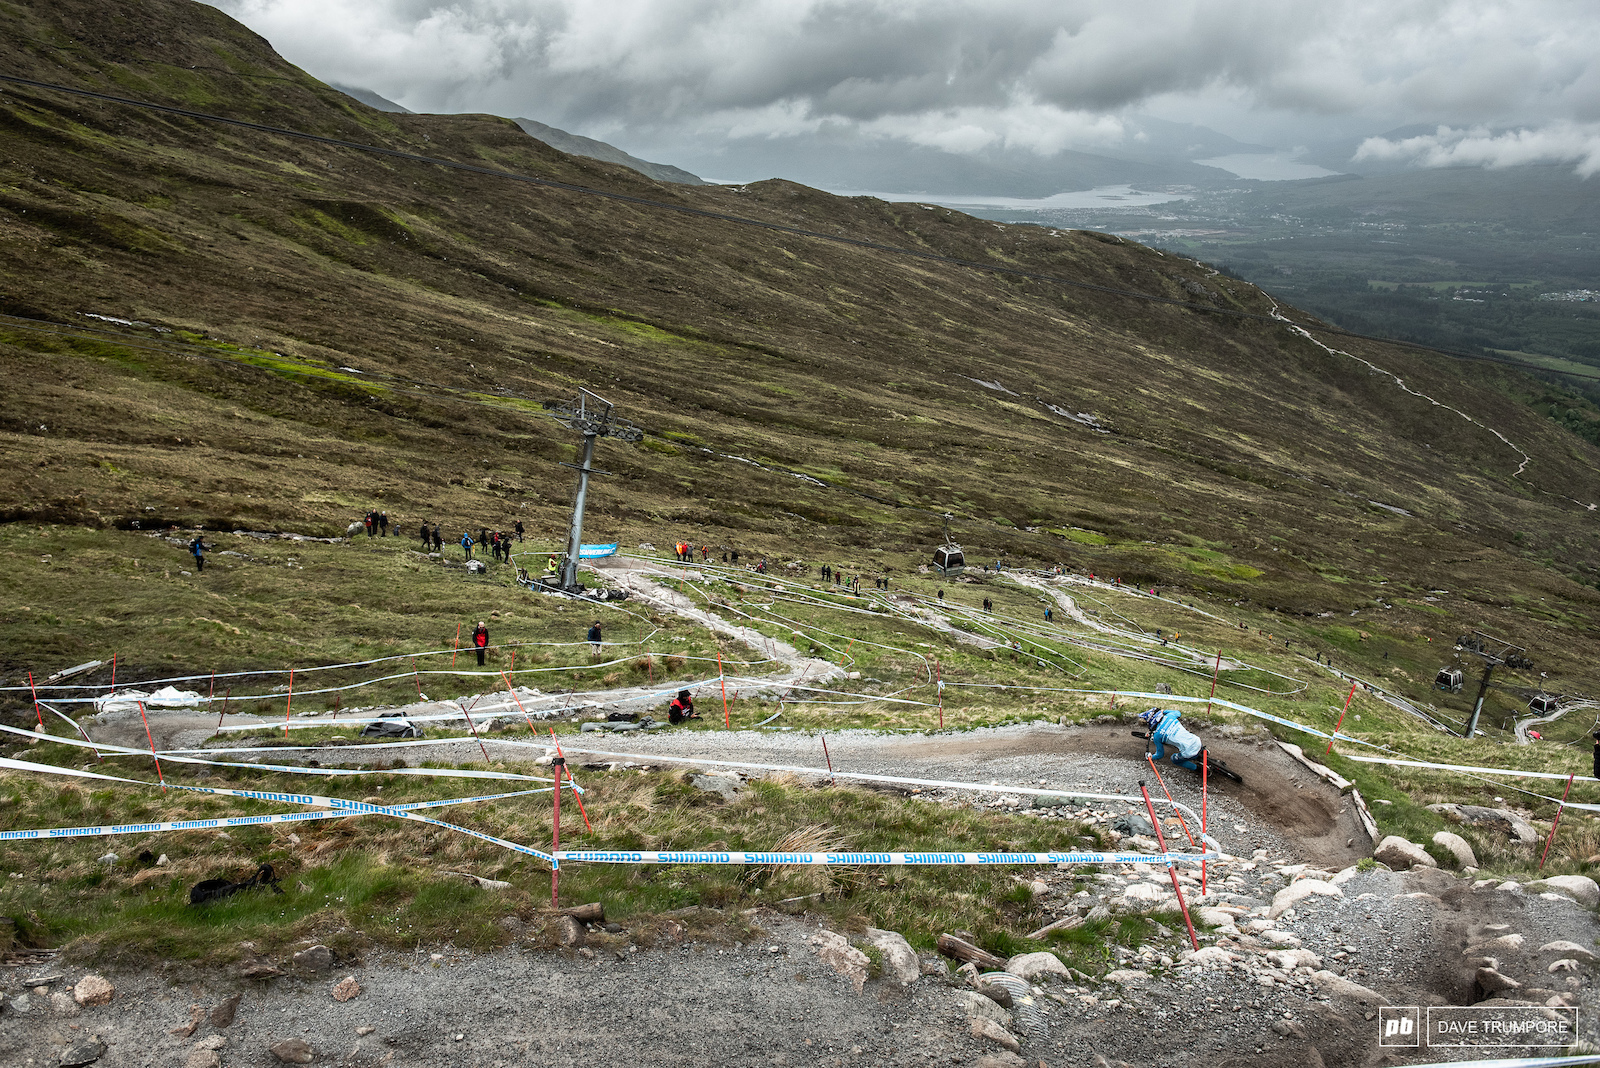 Big views of a big track in the Scottish Highlands.